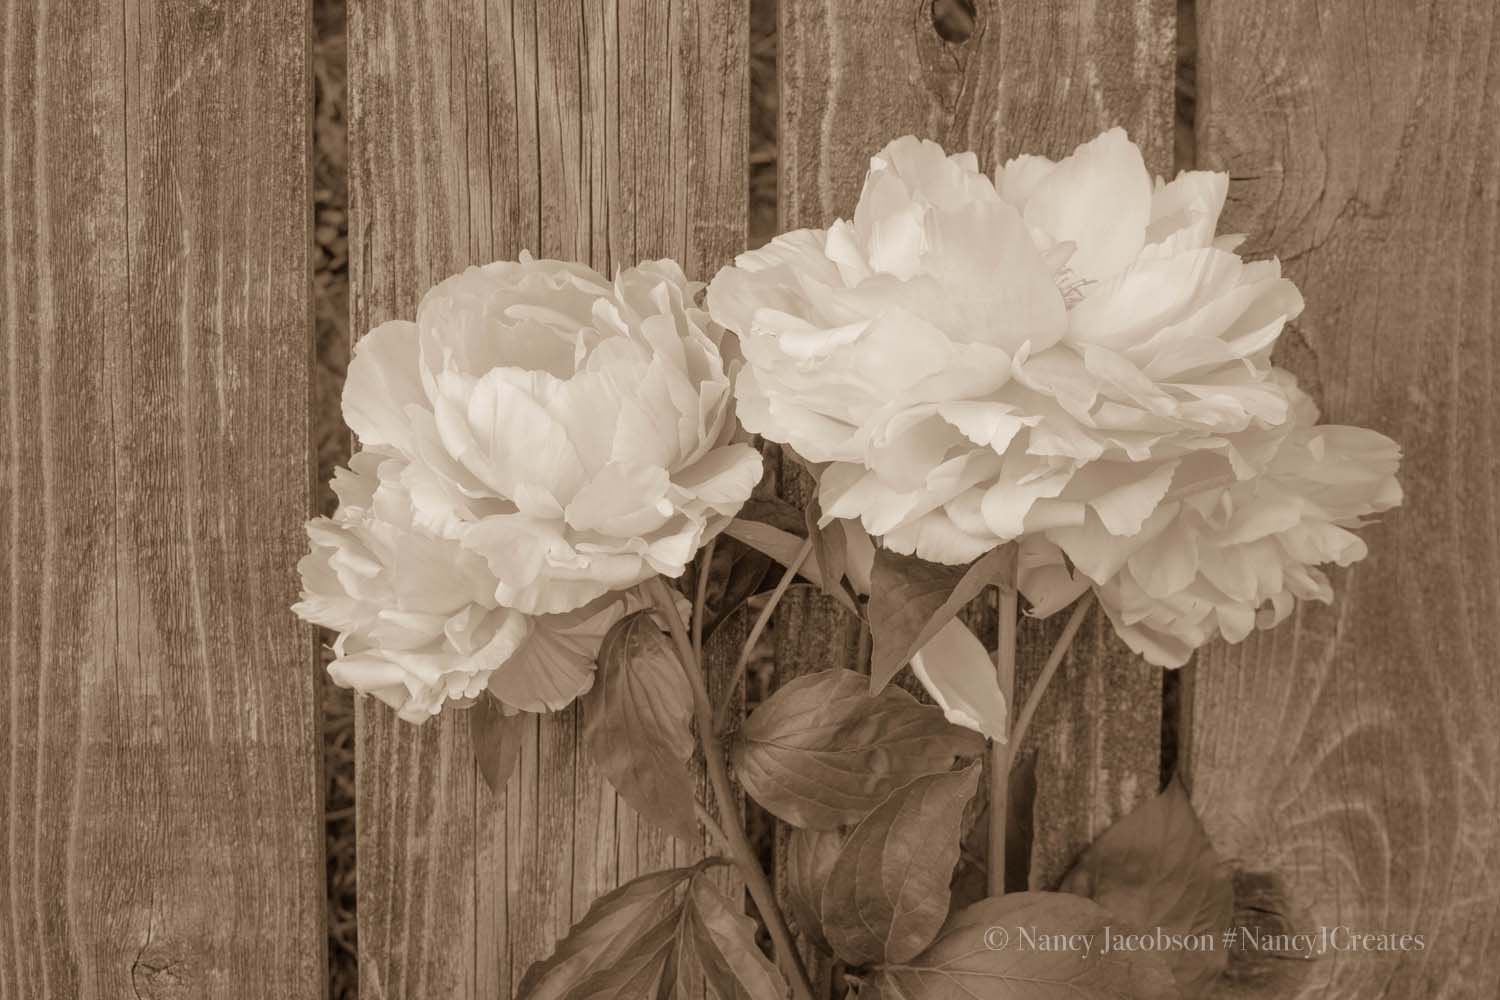 Rustic Floral Wall Art Black And White Peony Photo Etsy Rustic Floral Wall Art Floral Wall Art Black And White Wall Art